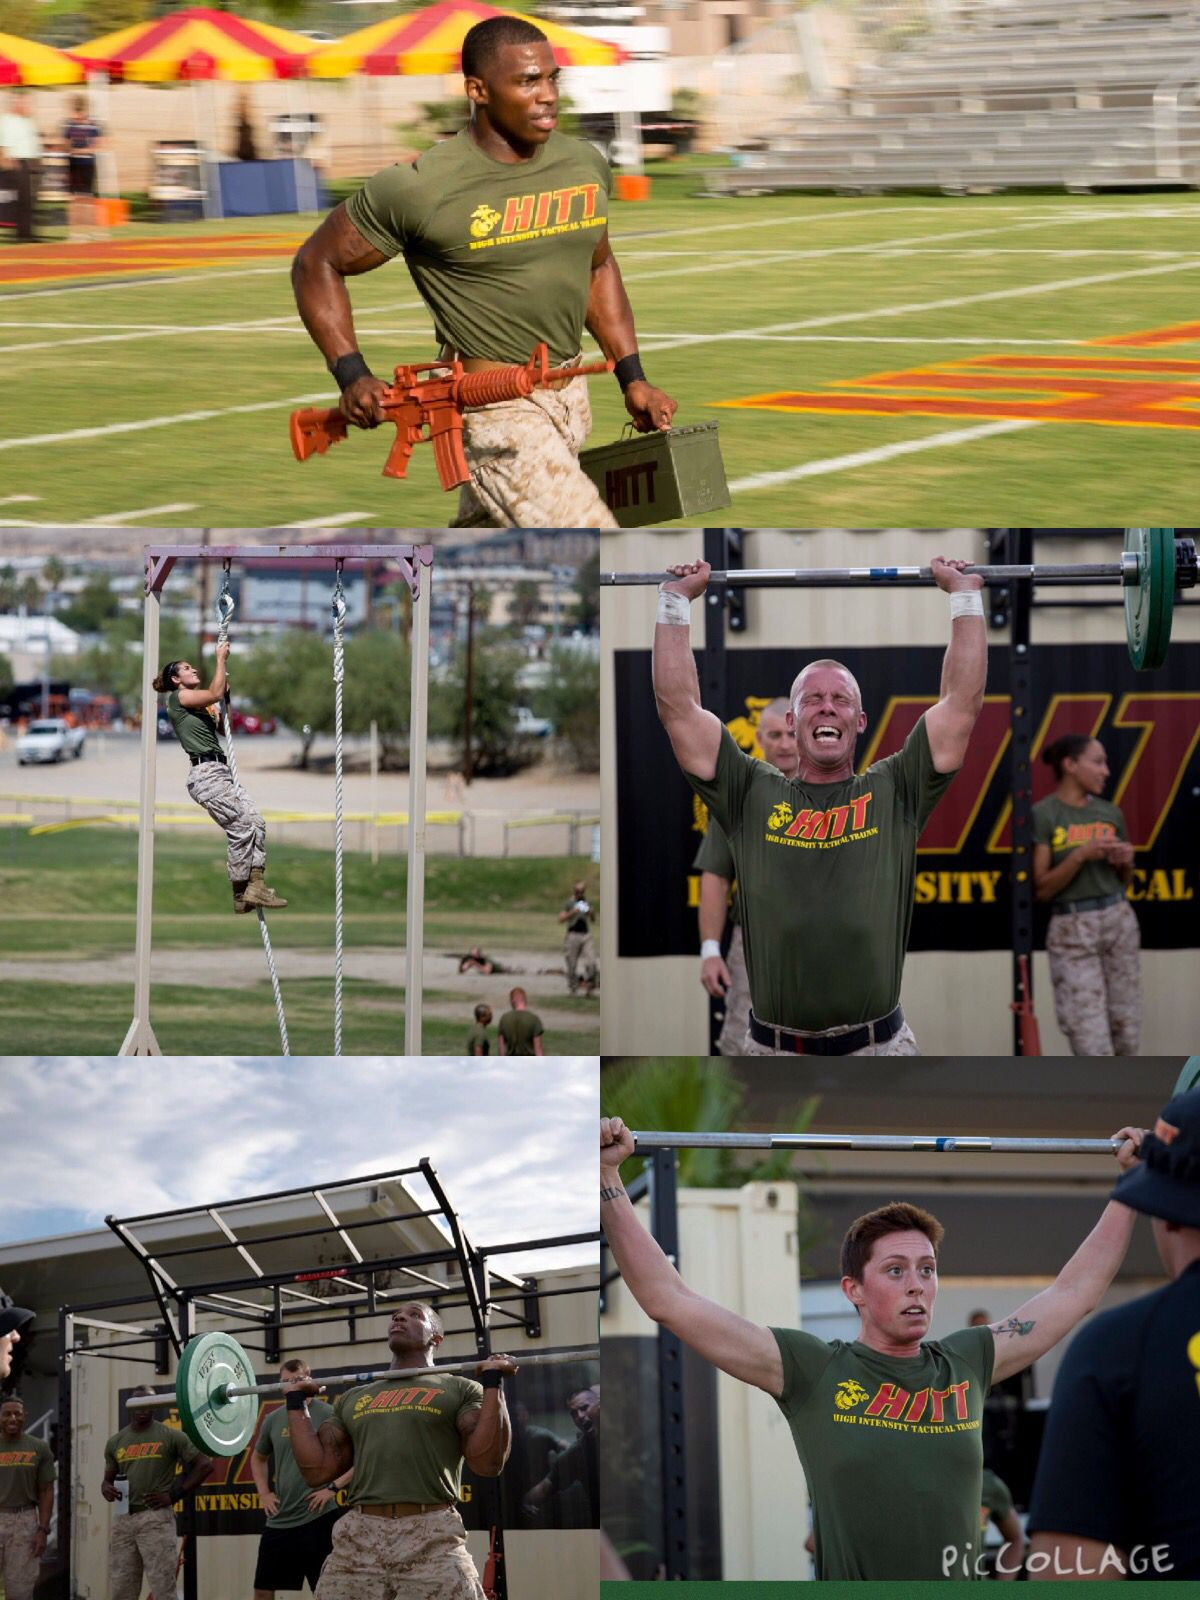 Marine Corps tests grit in HITT championship (With images